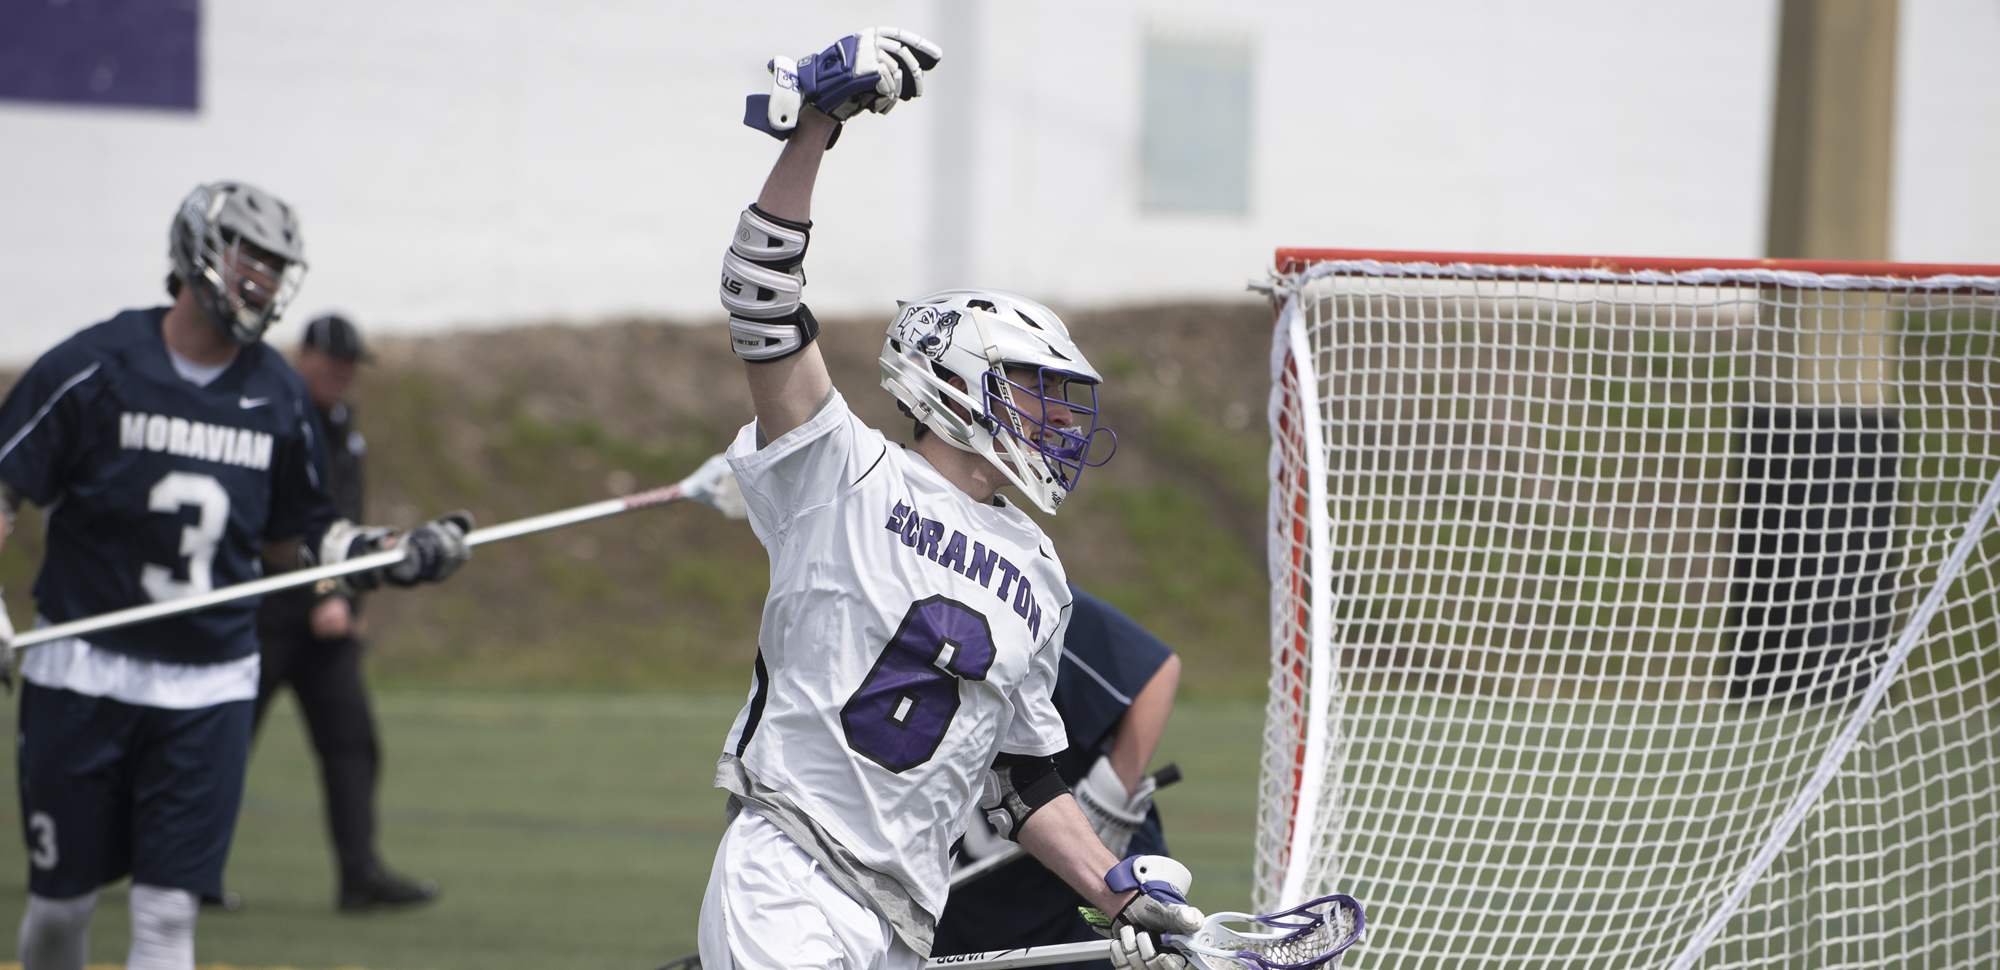 Sophomore attackman Connor Kirkwood scored three times on Wednesday, giving him 42 for the season, two shy of matching the Royals' single-season record.